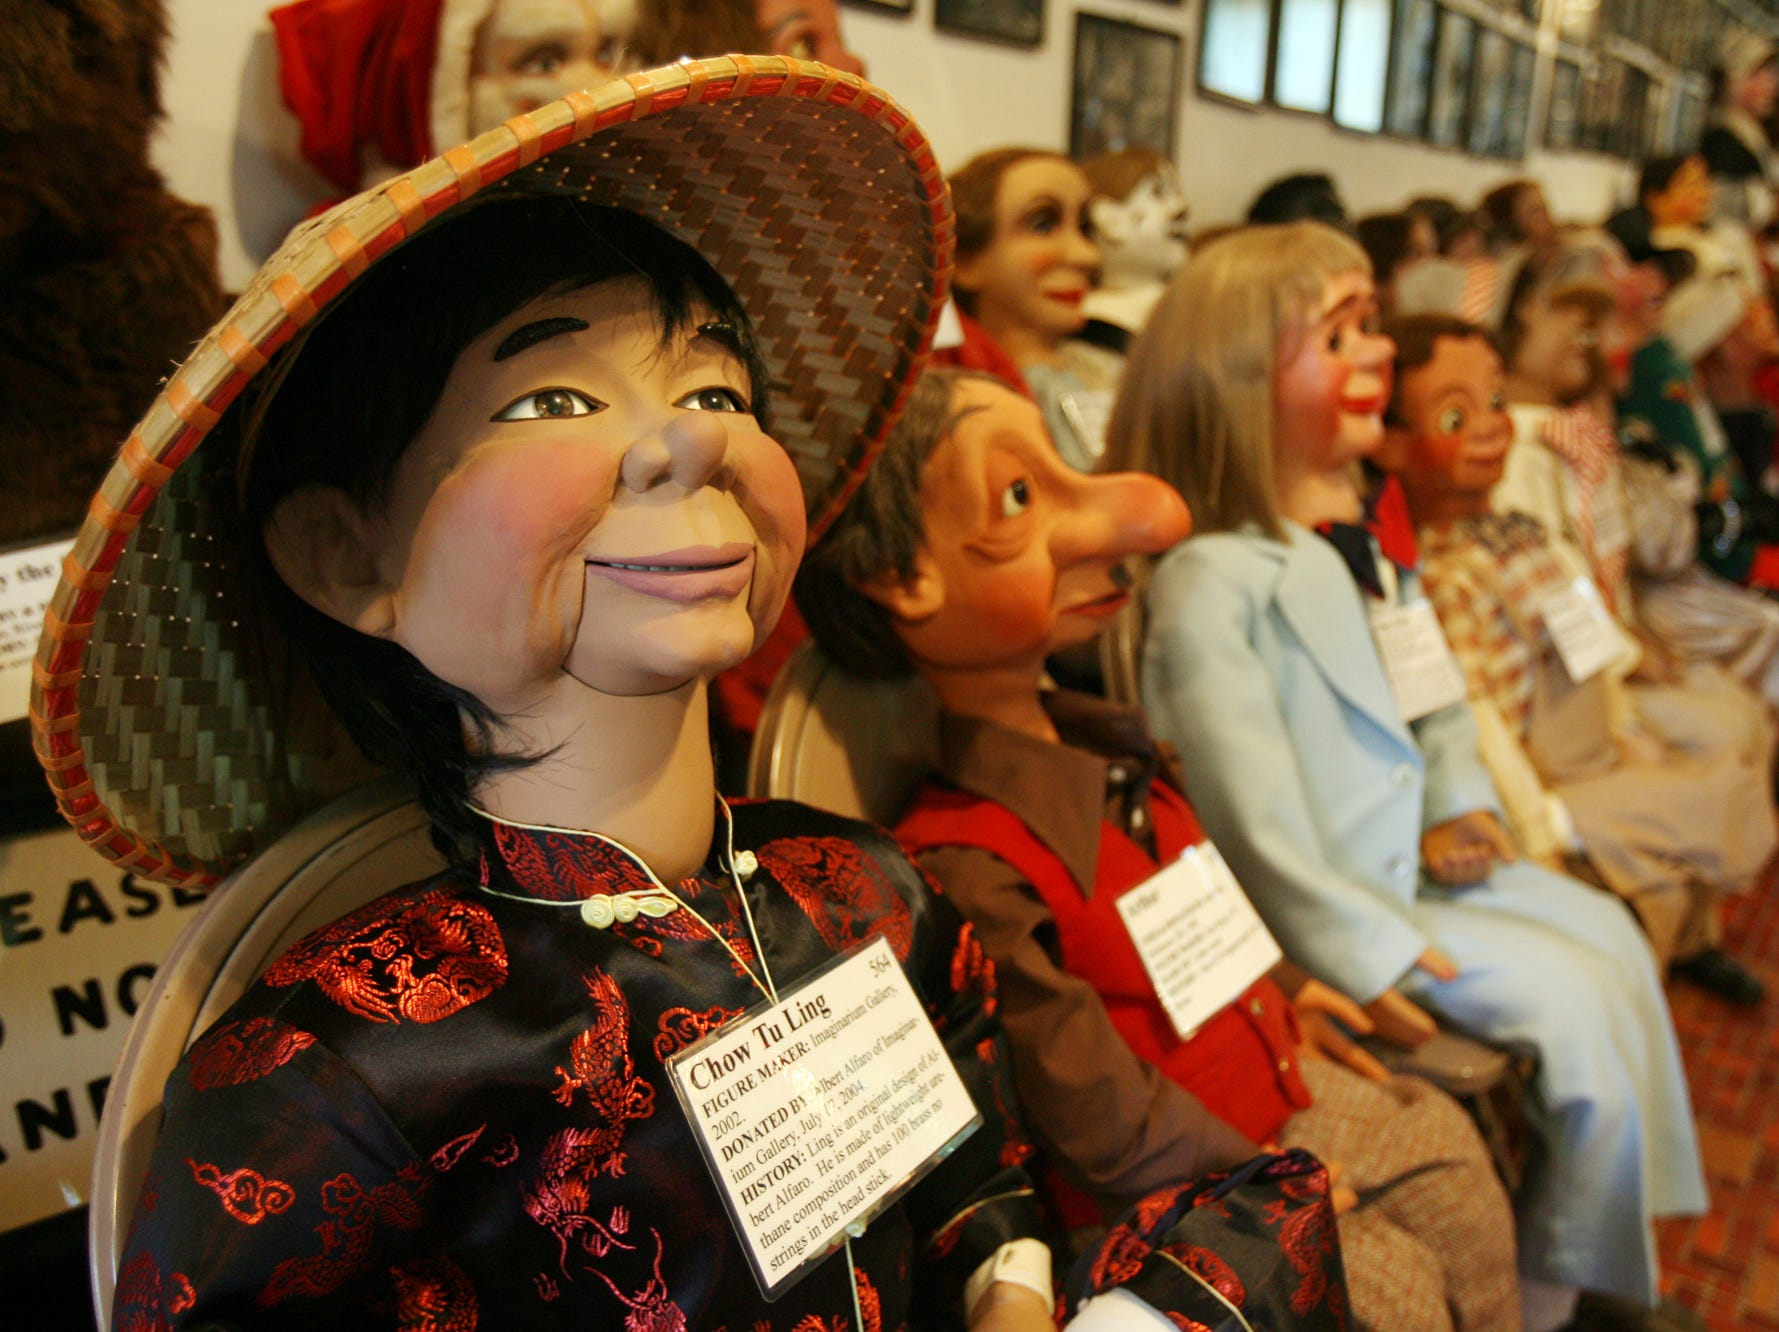 Some of the hundreds of dolls in the museum. Vent Haven Museum, the world's only museum of ventriloquial figures and memorabilia in Fort Mitchell, Kentucky.